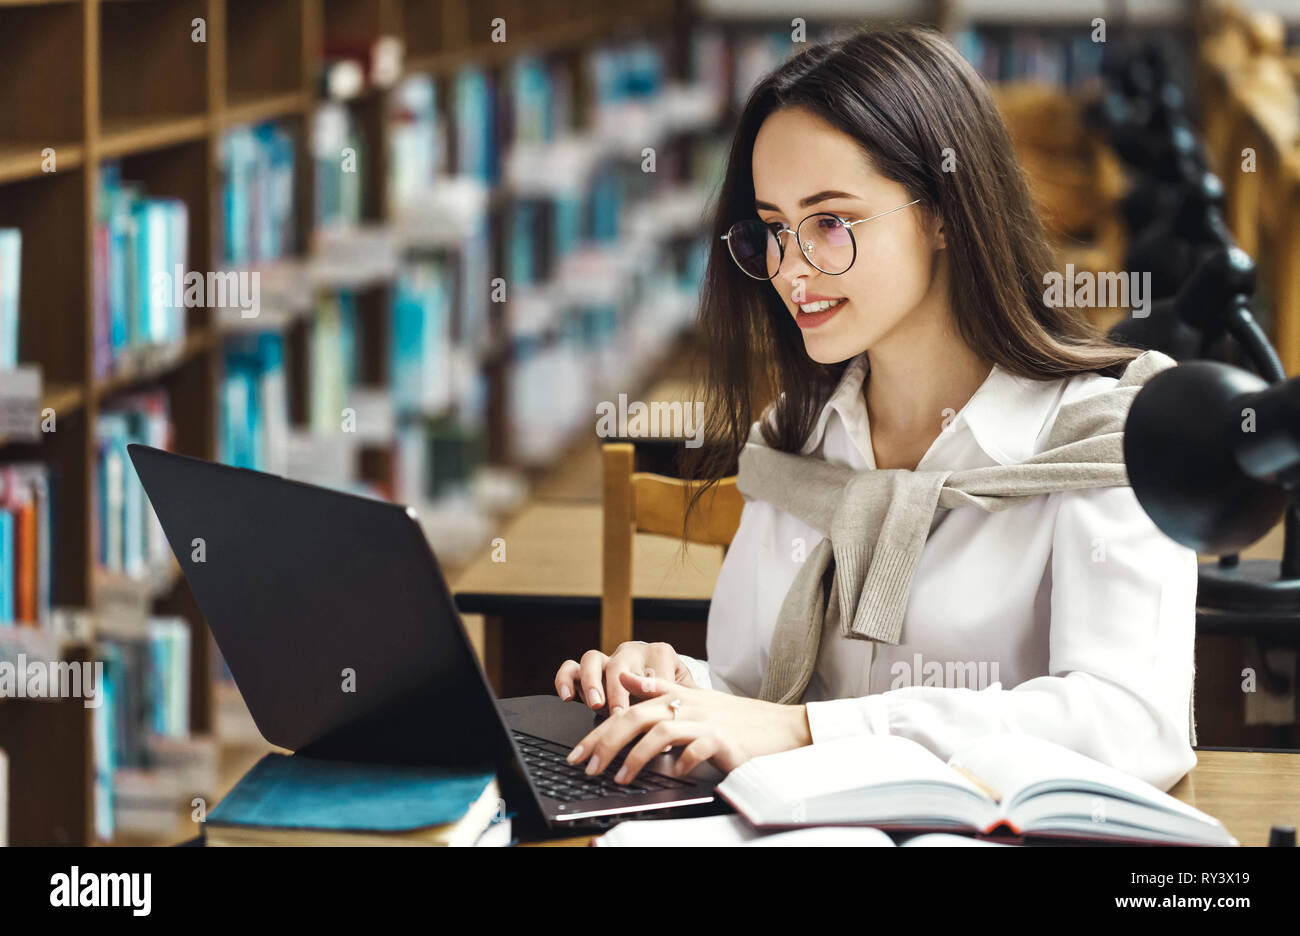 Brunette woman using laptop computer for startup project, researching information online Stock Photo